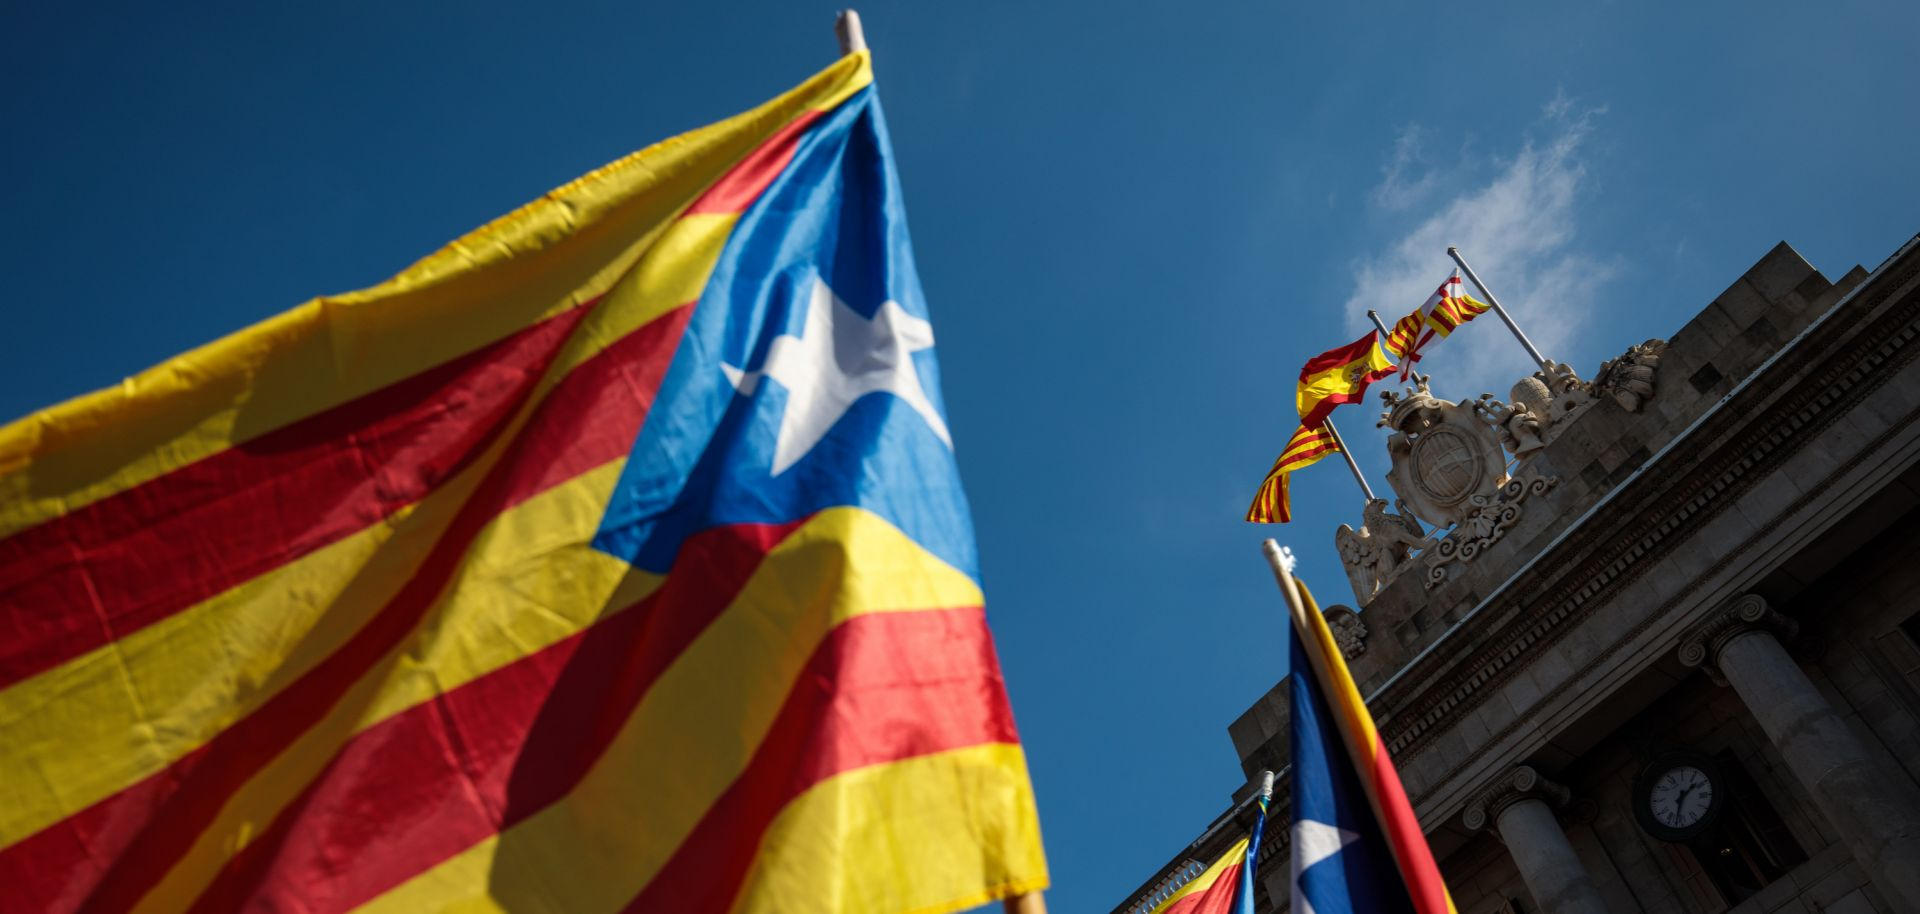 The Catalonian flag waves in Spain.